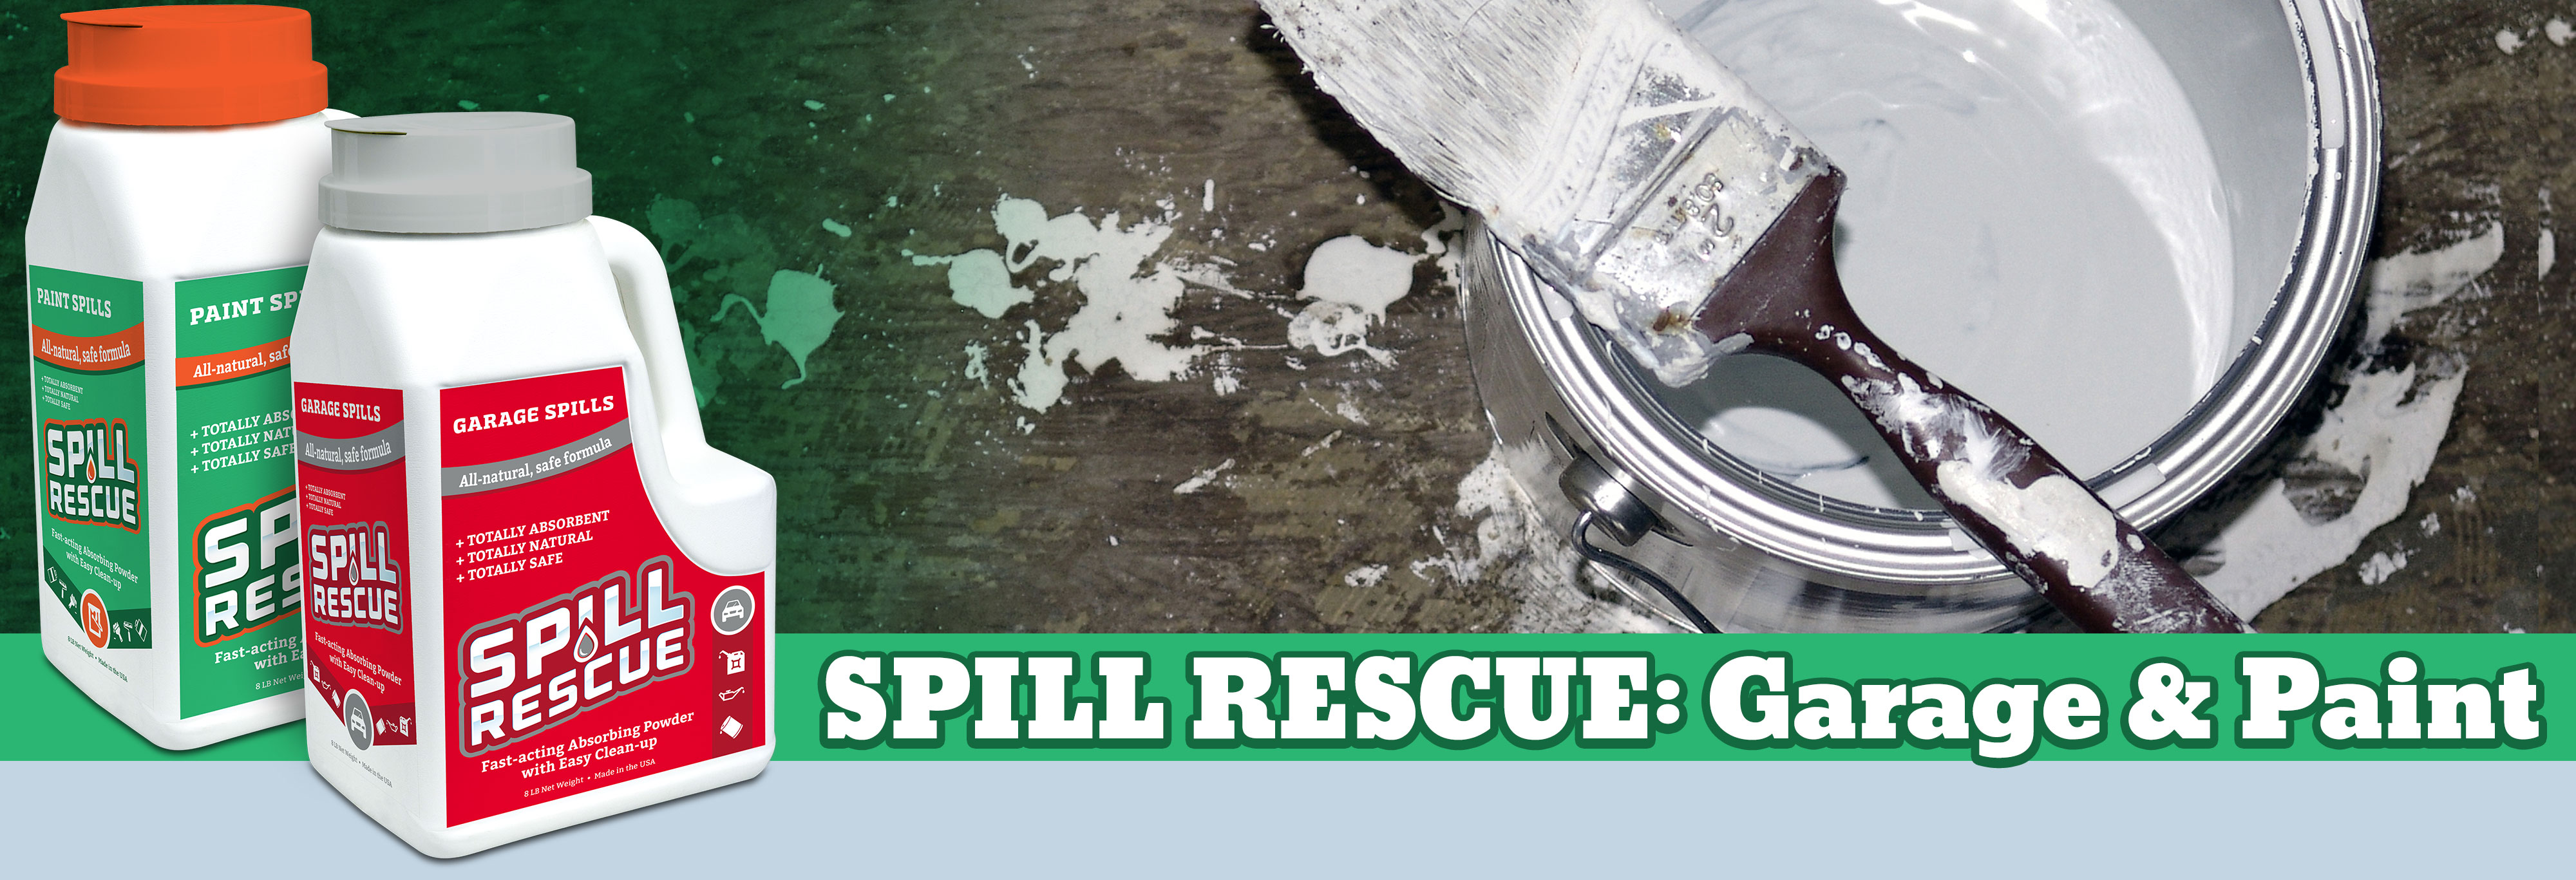 PureSky Products Spill Rescue for Garage and Paint